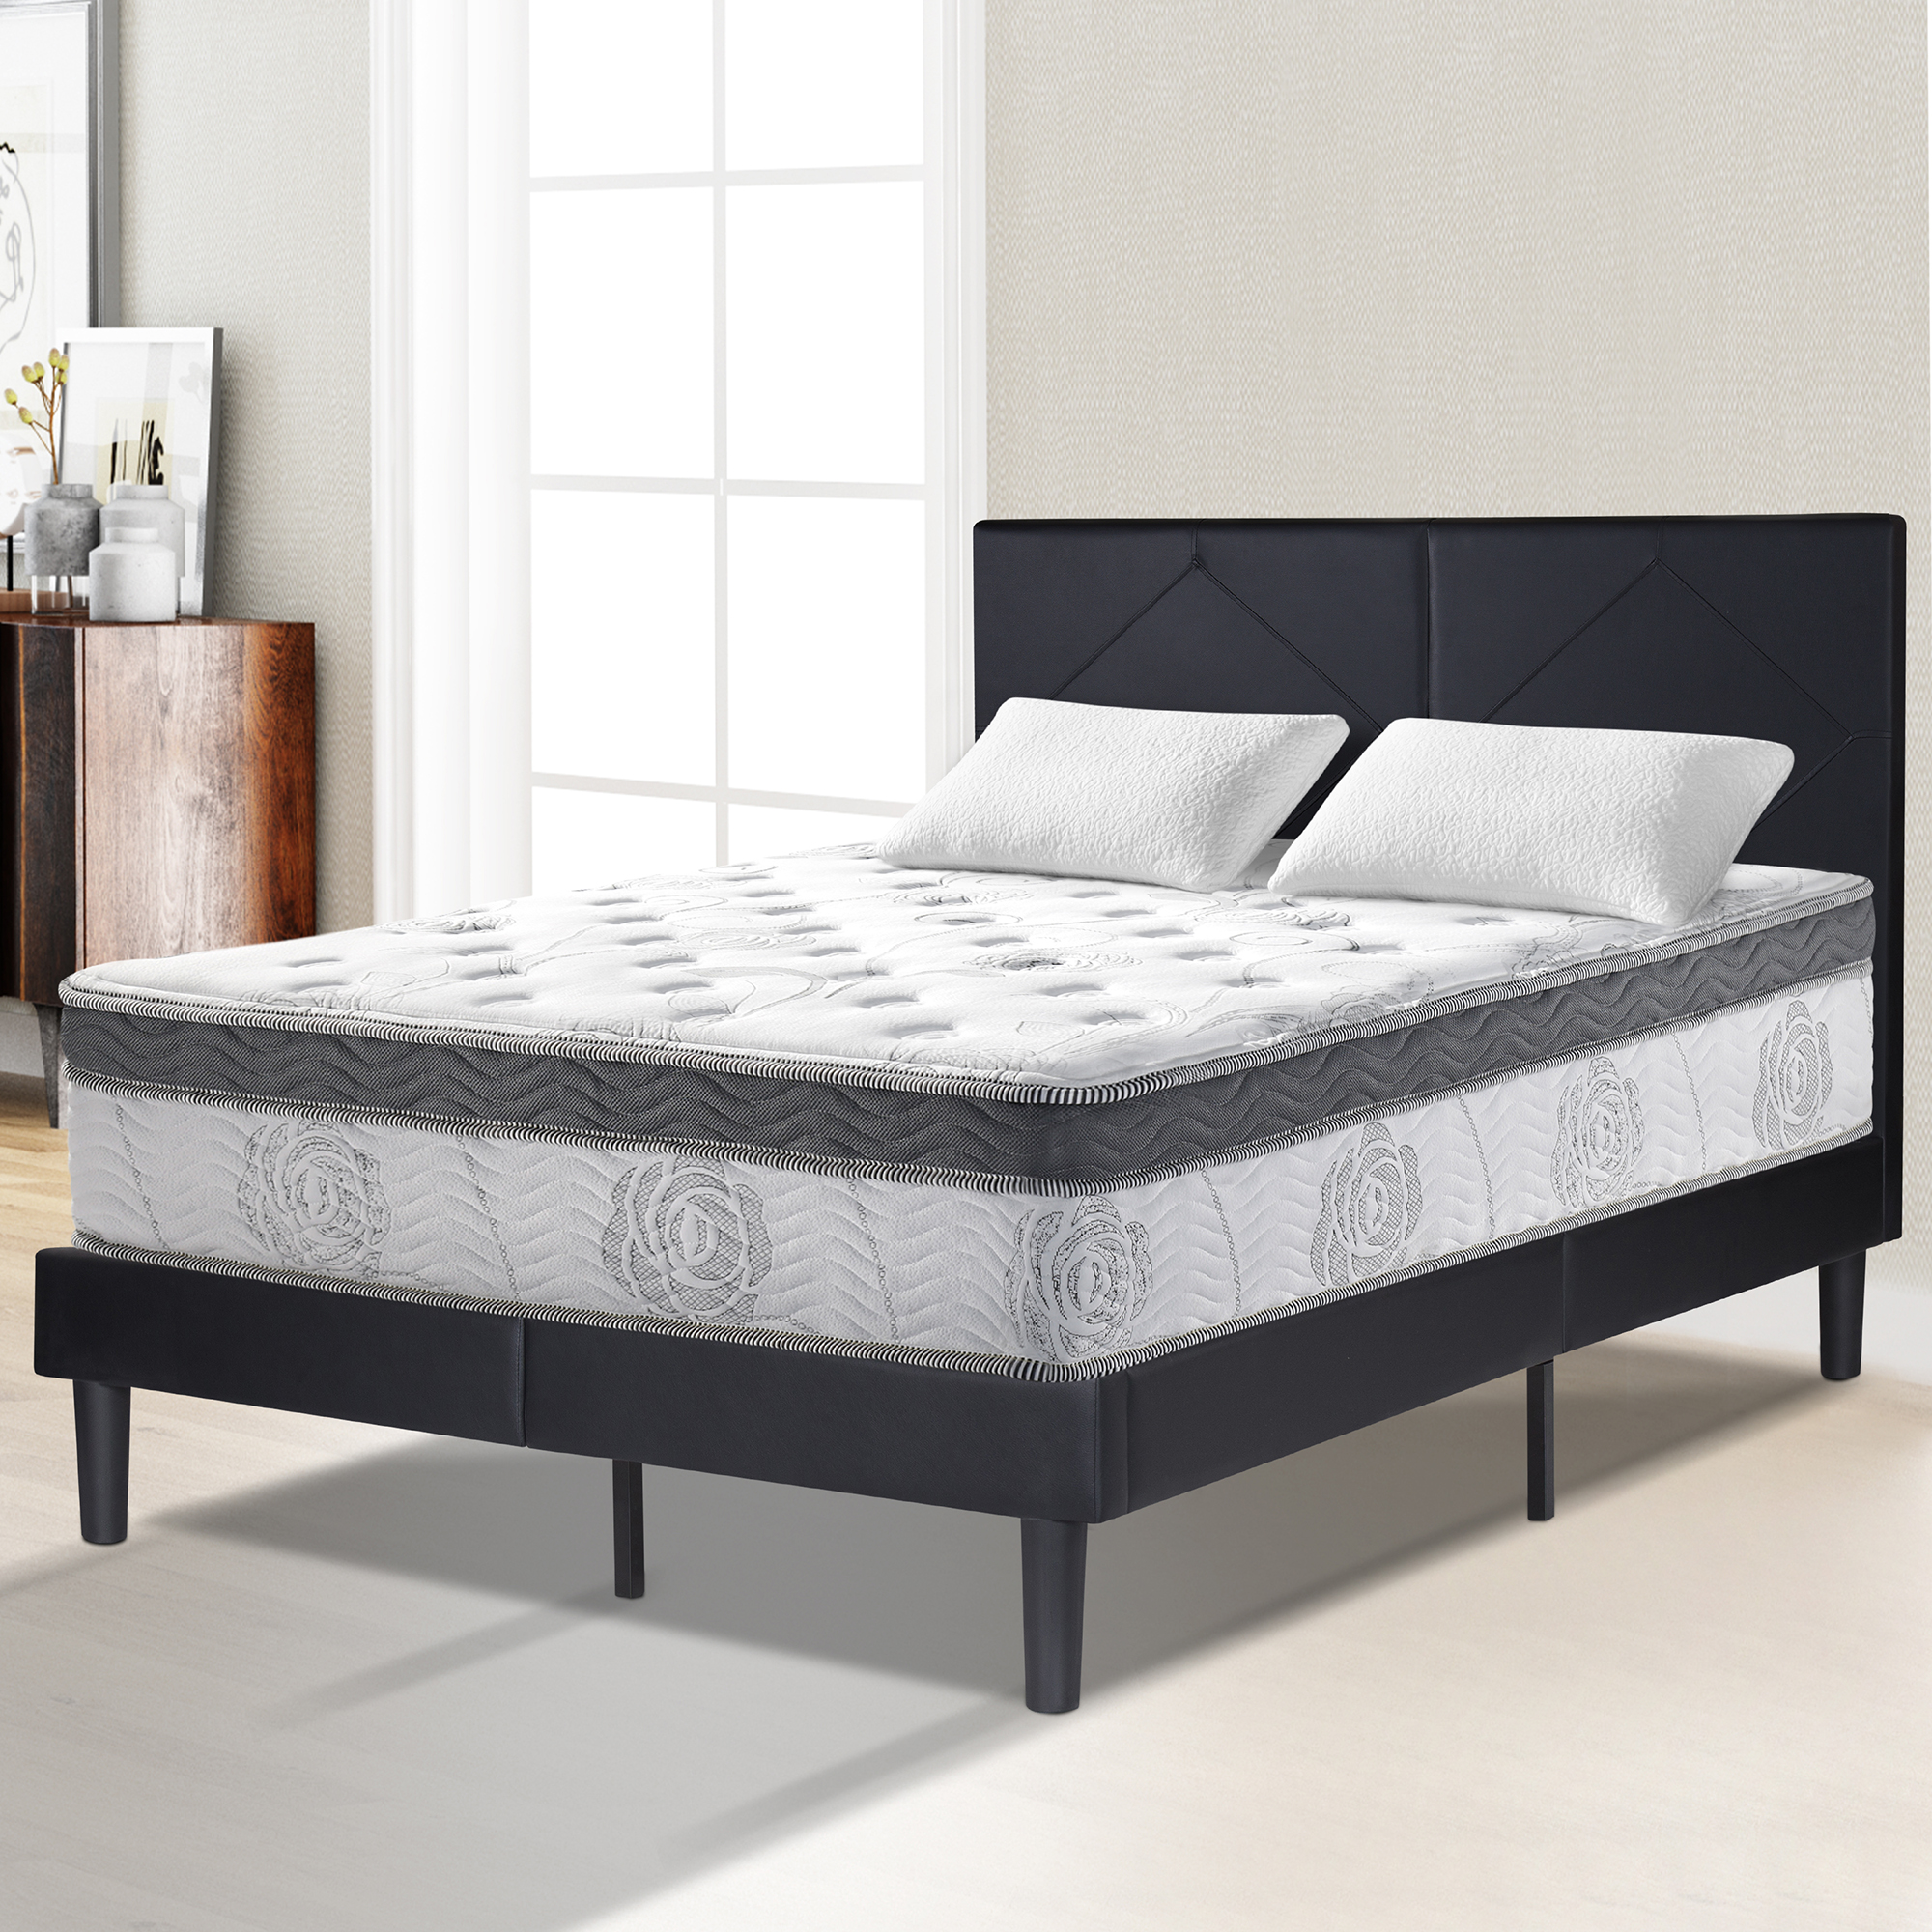 Sleeplace 13 in Galaxy Euro Box Top Pocket Spring Hybrid Mattress ,Full